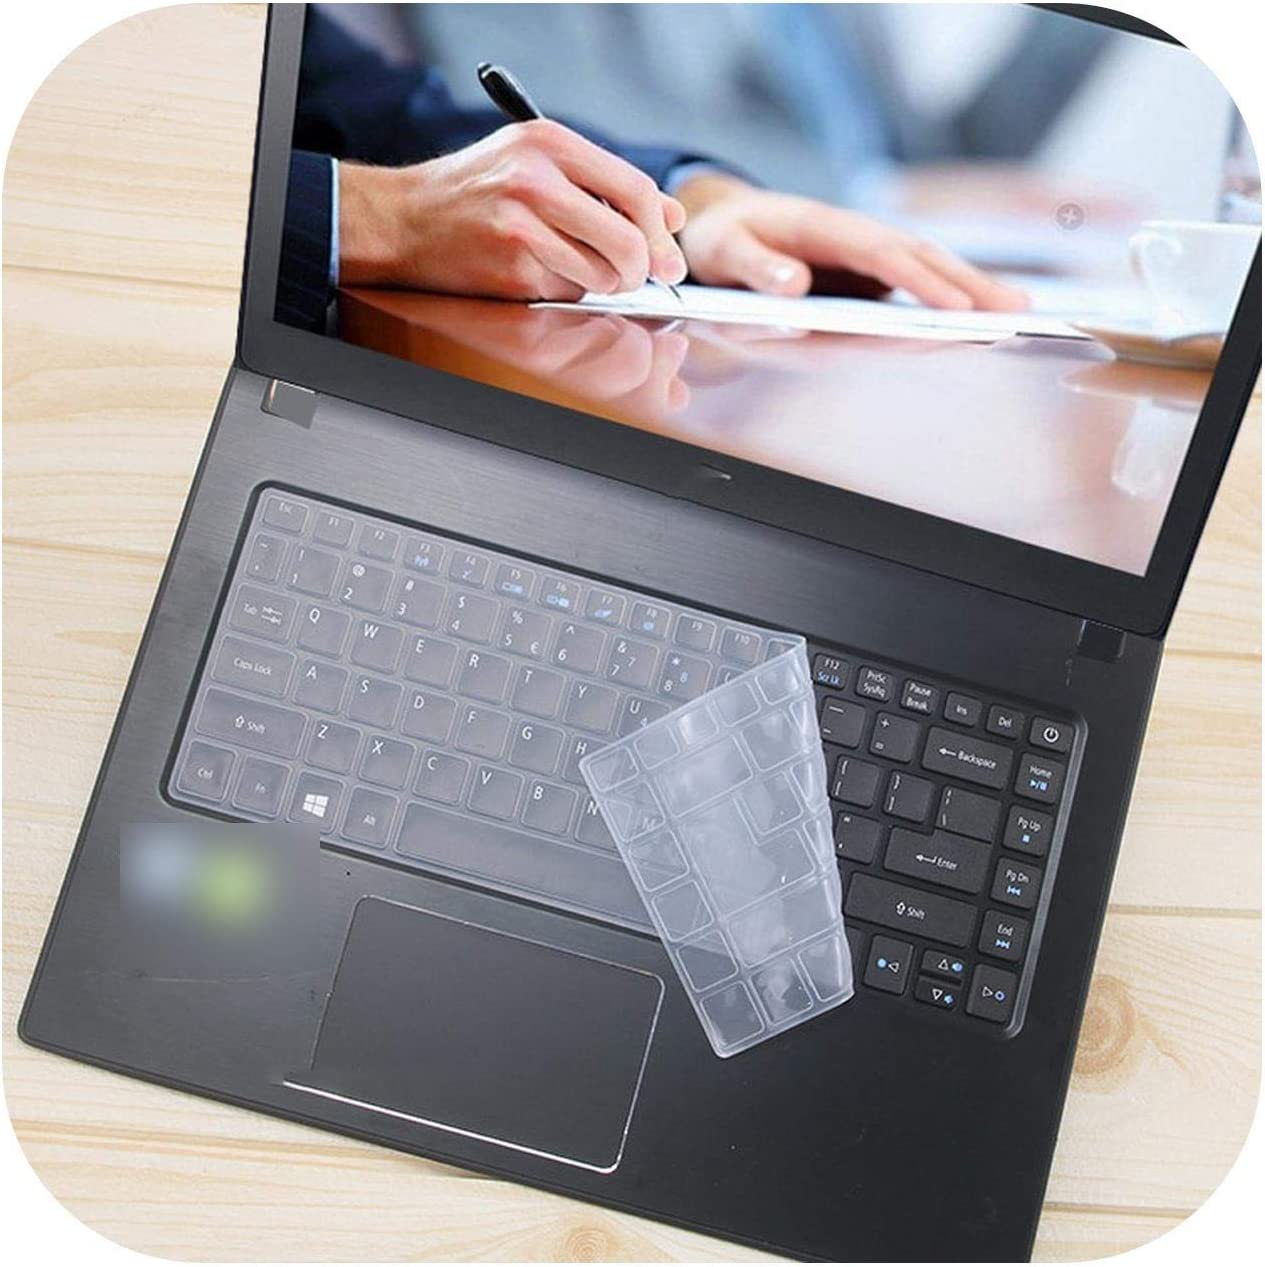 14 Inch Silicone Laptop Keyboard Cover Protector Skin for Acer Aspire E14 Sf314 Swift 3 E5 432G K4000 Tmp248 Tmtx40 Tmx349-Clear-